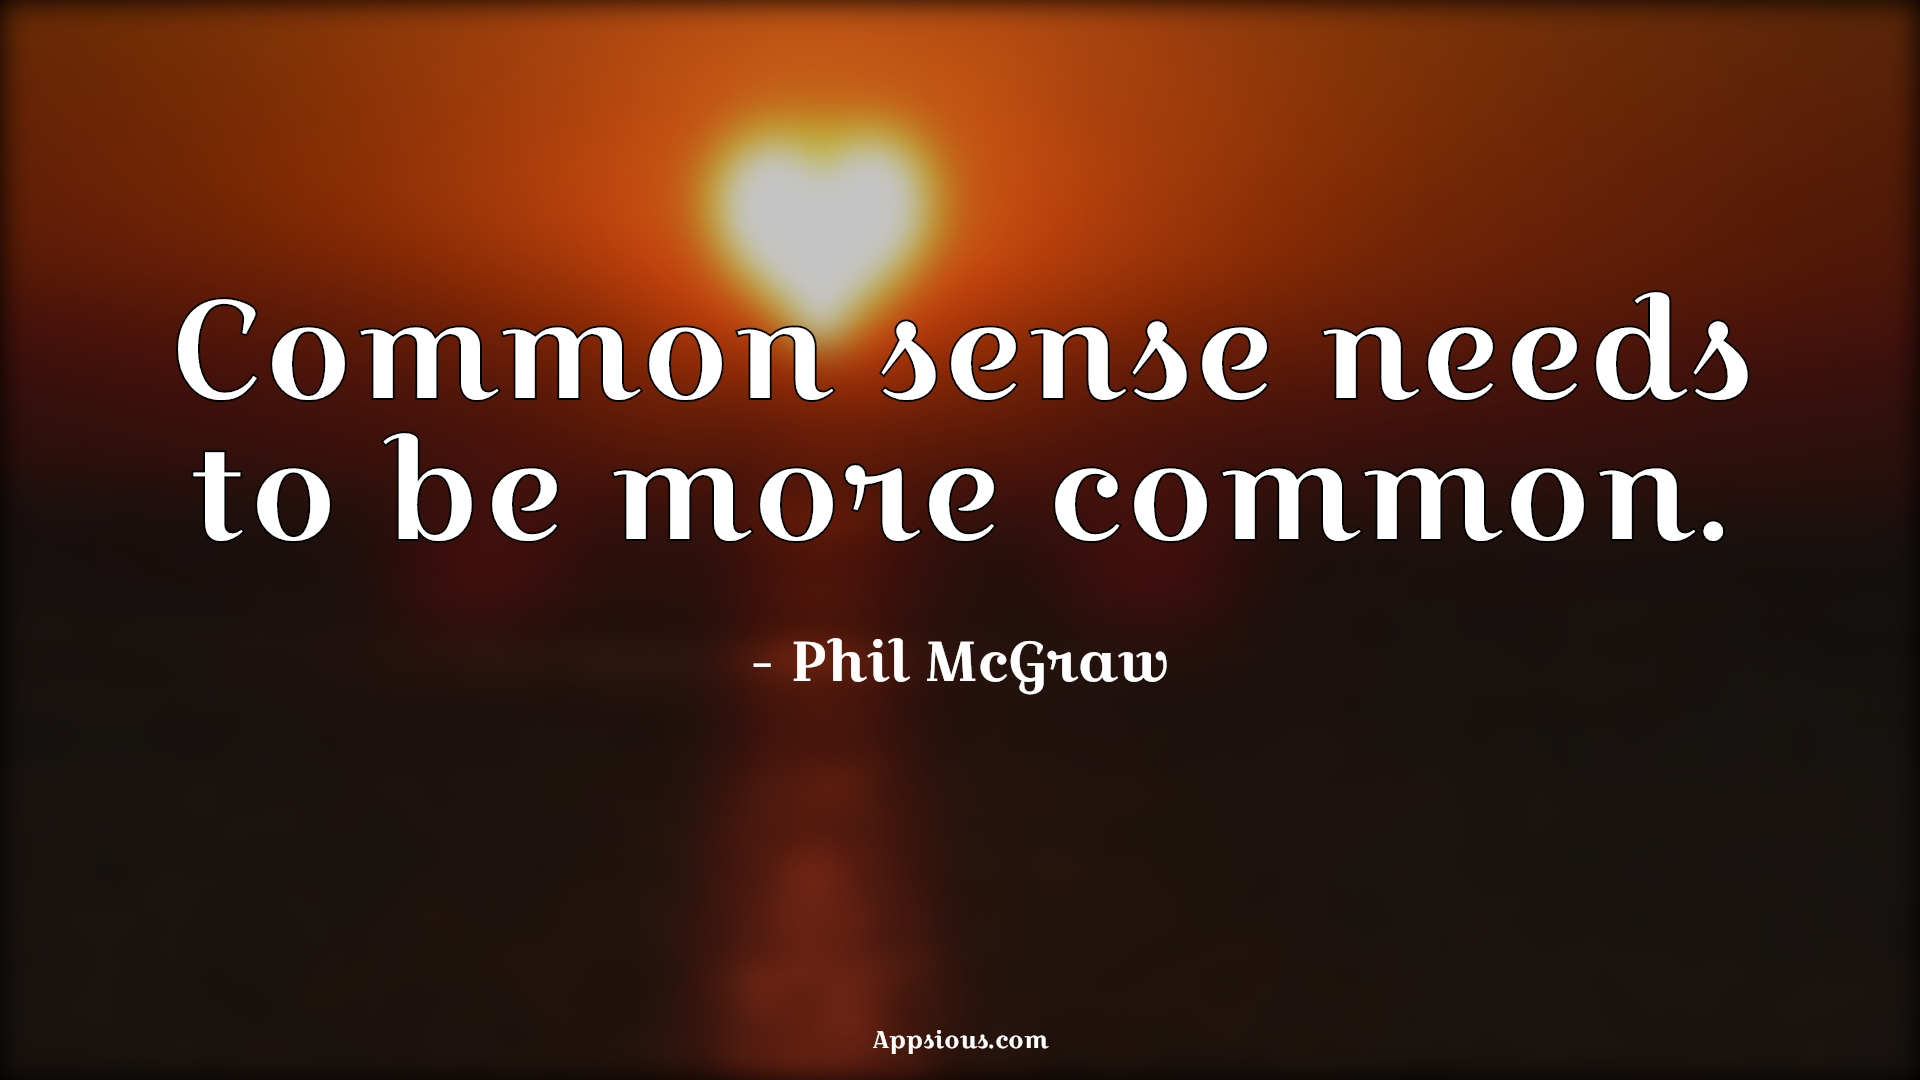 Common sense needs to be more common.